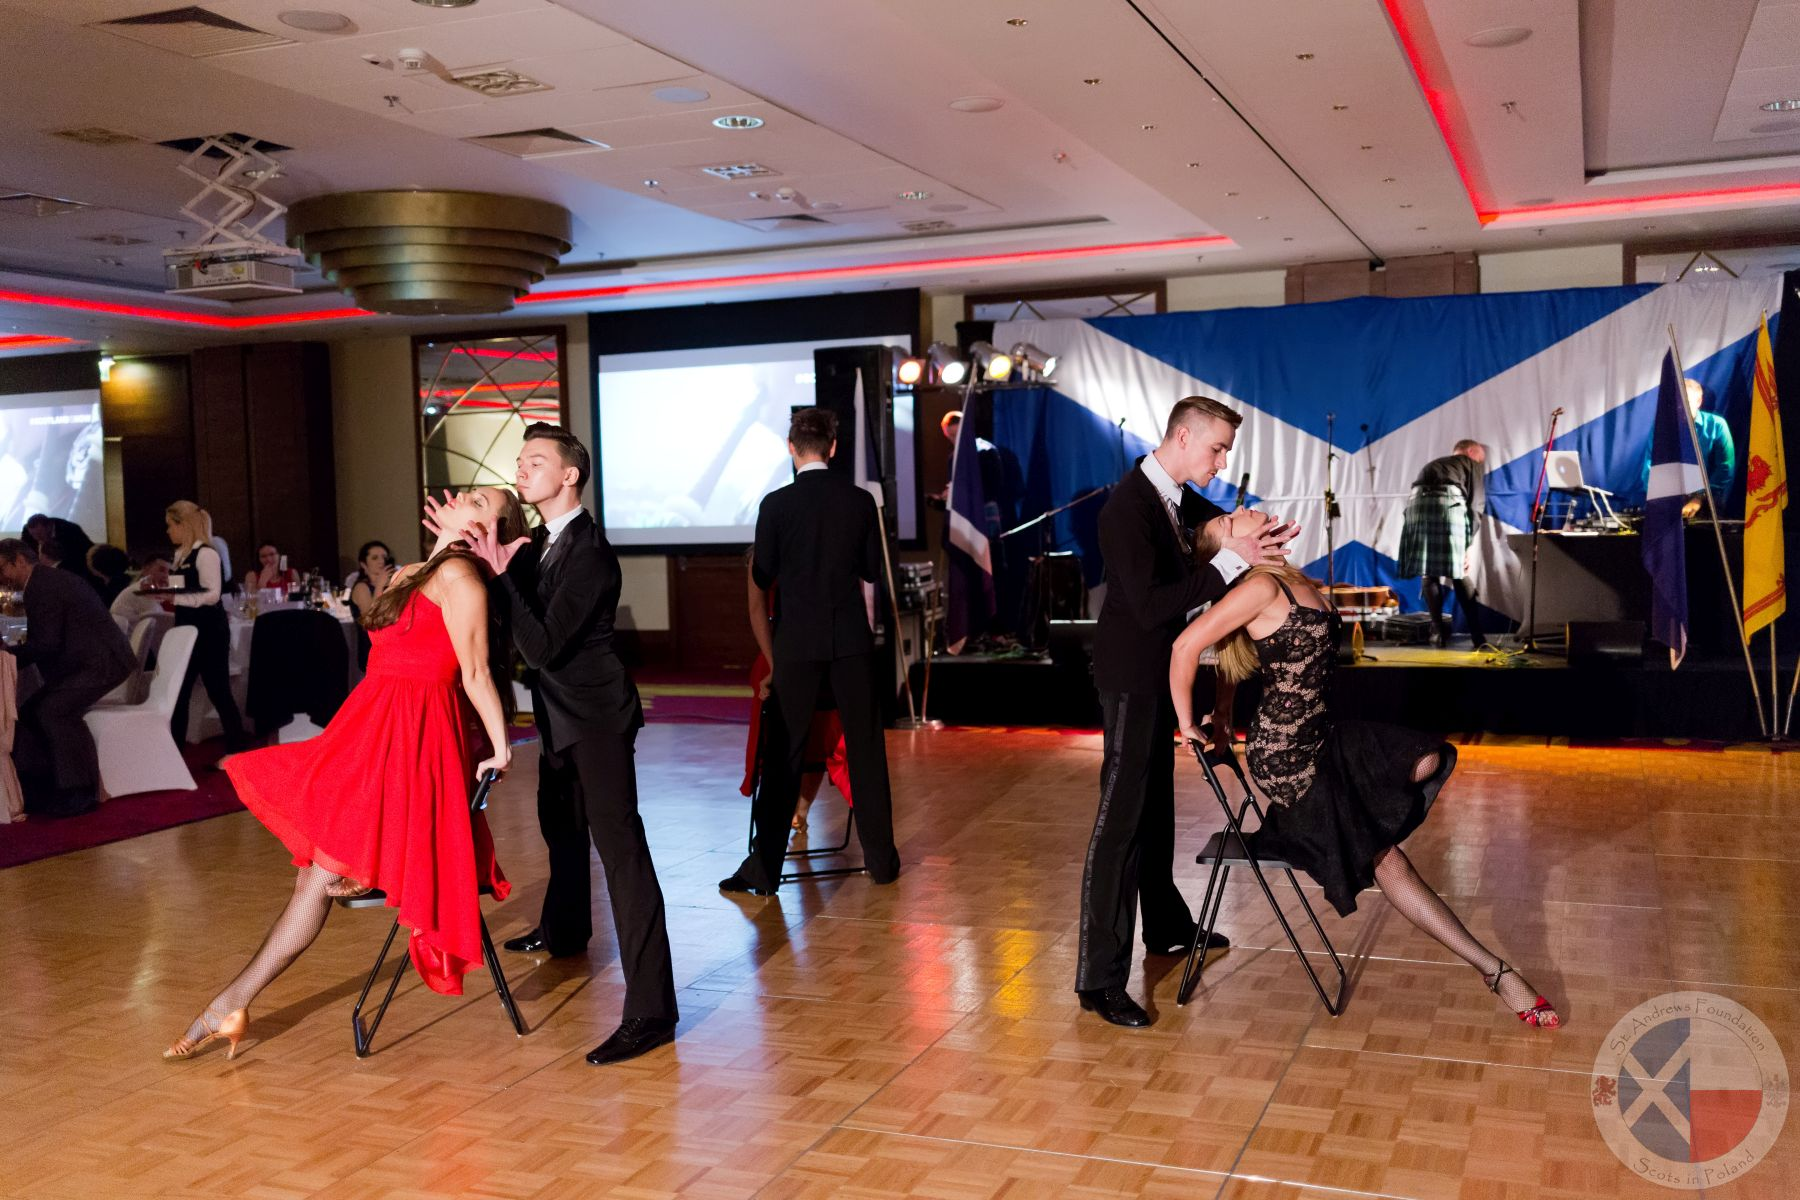 Arthur Murray Dance Studio demonstrate the tango